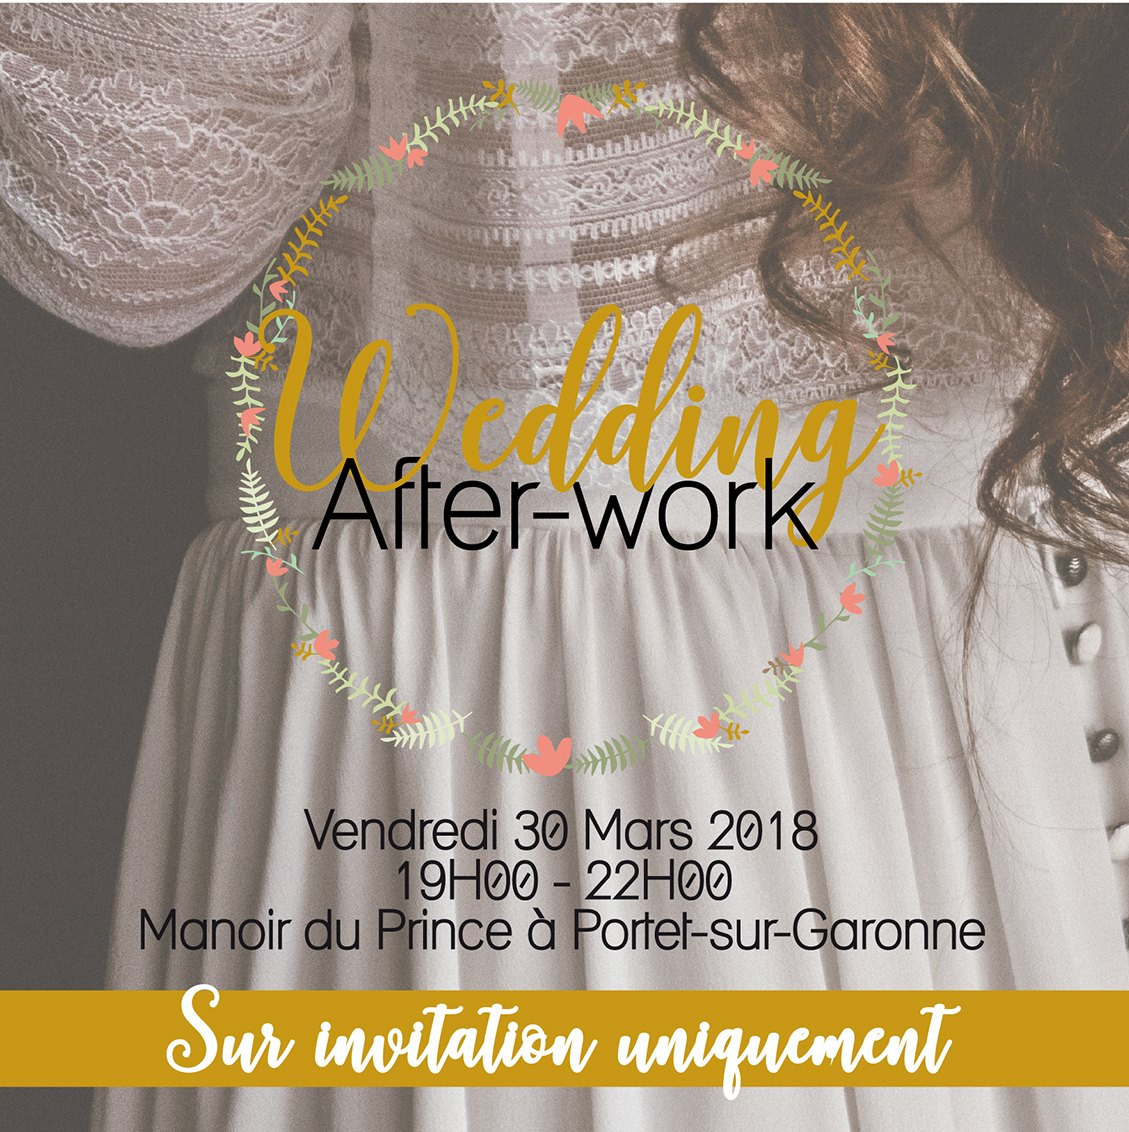 Wedding After-Work au Manoir du Prince – Vendredi 30 Mars